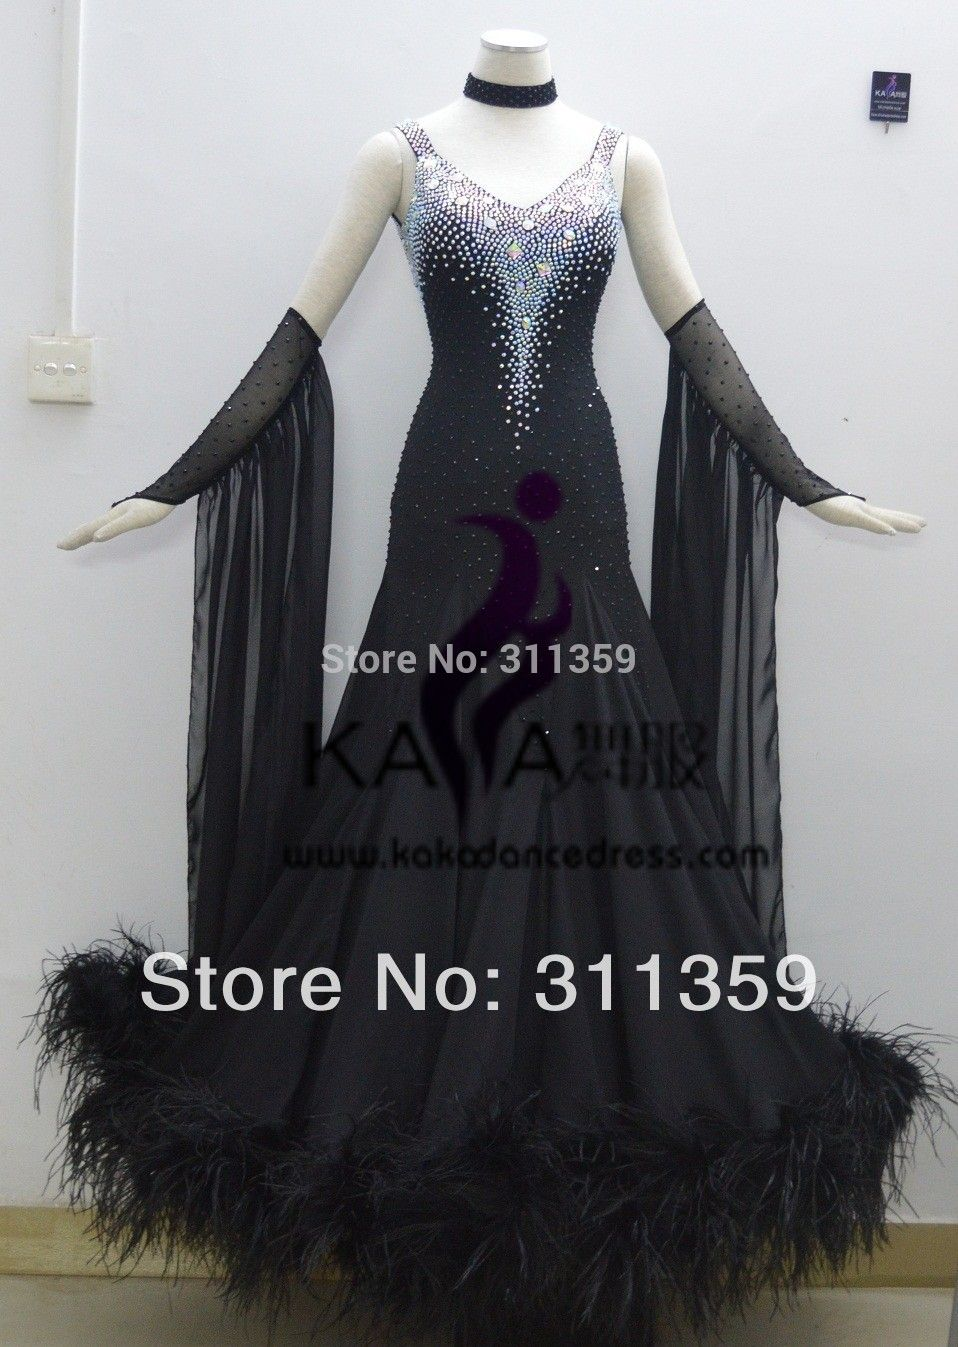 Kaka dance b new styleblack feather ballroom standard